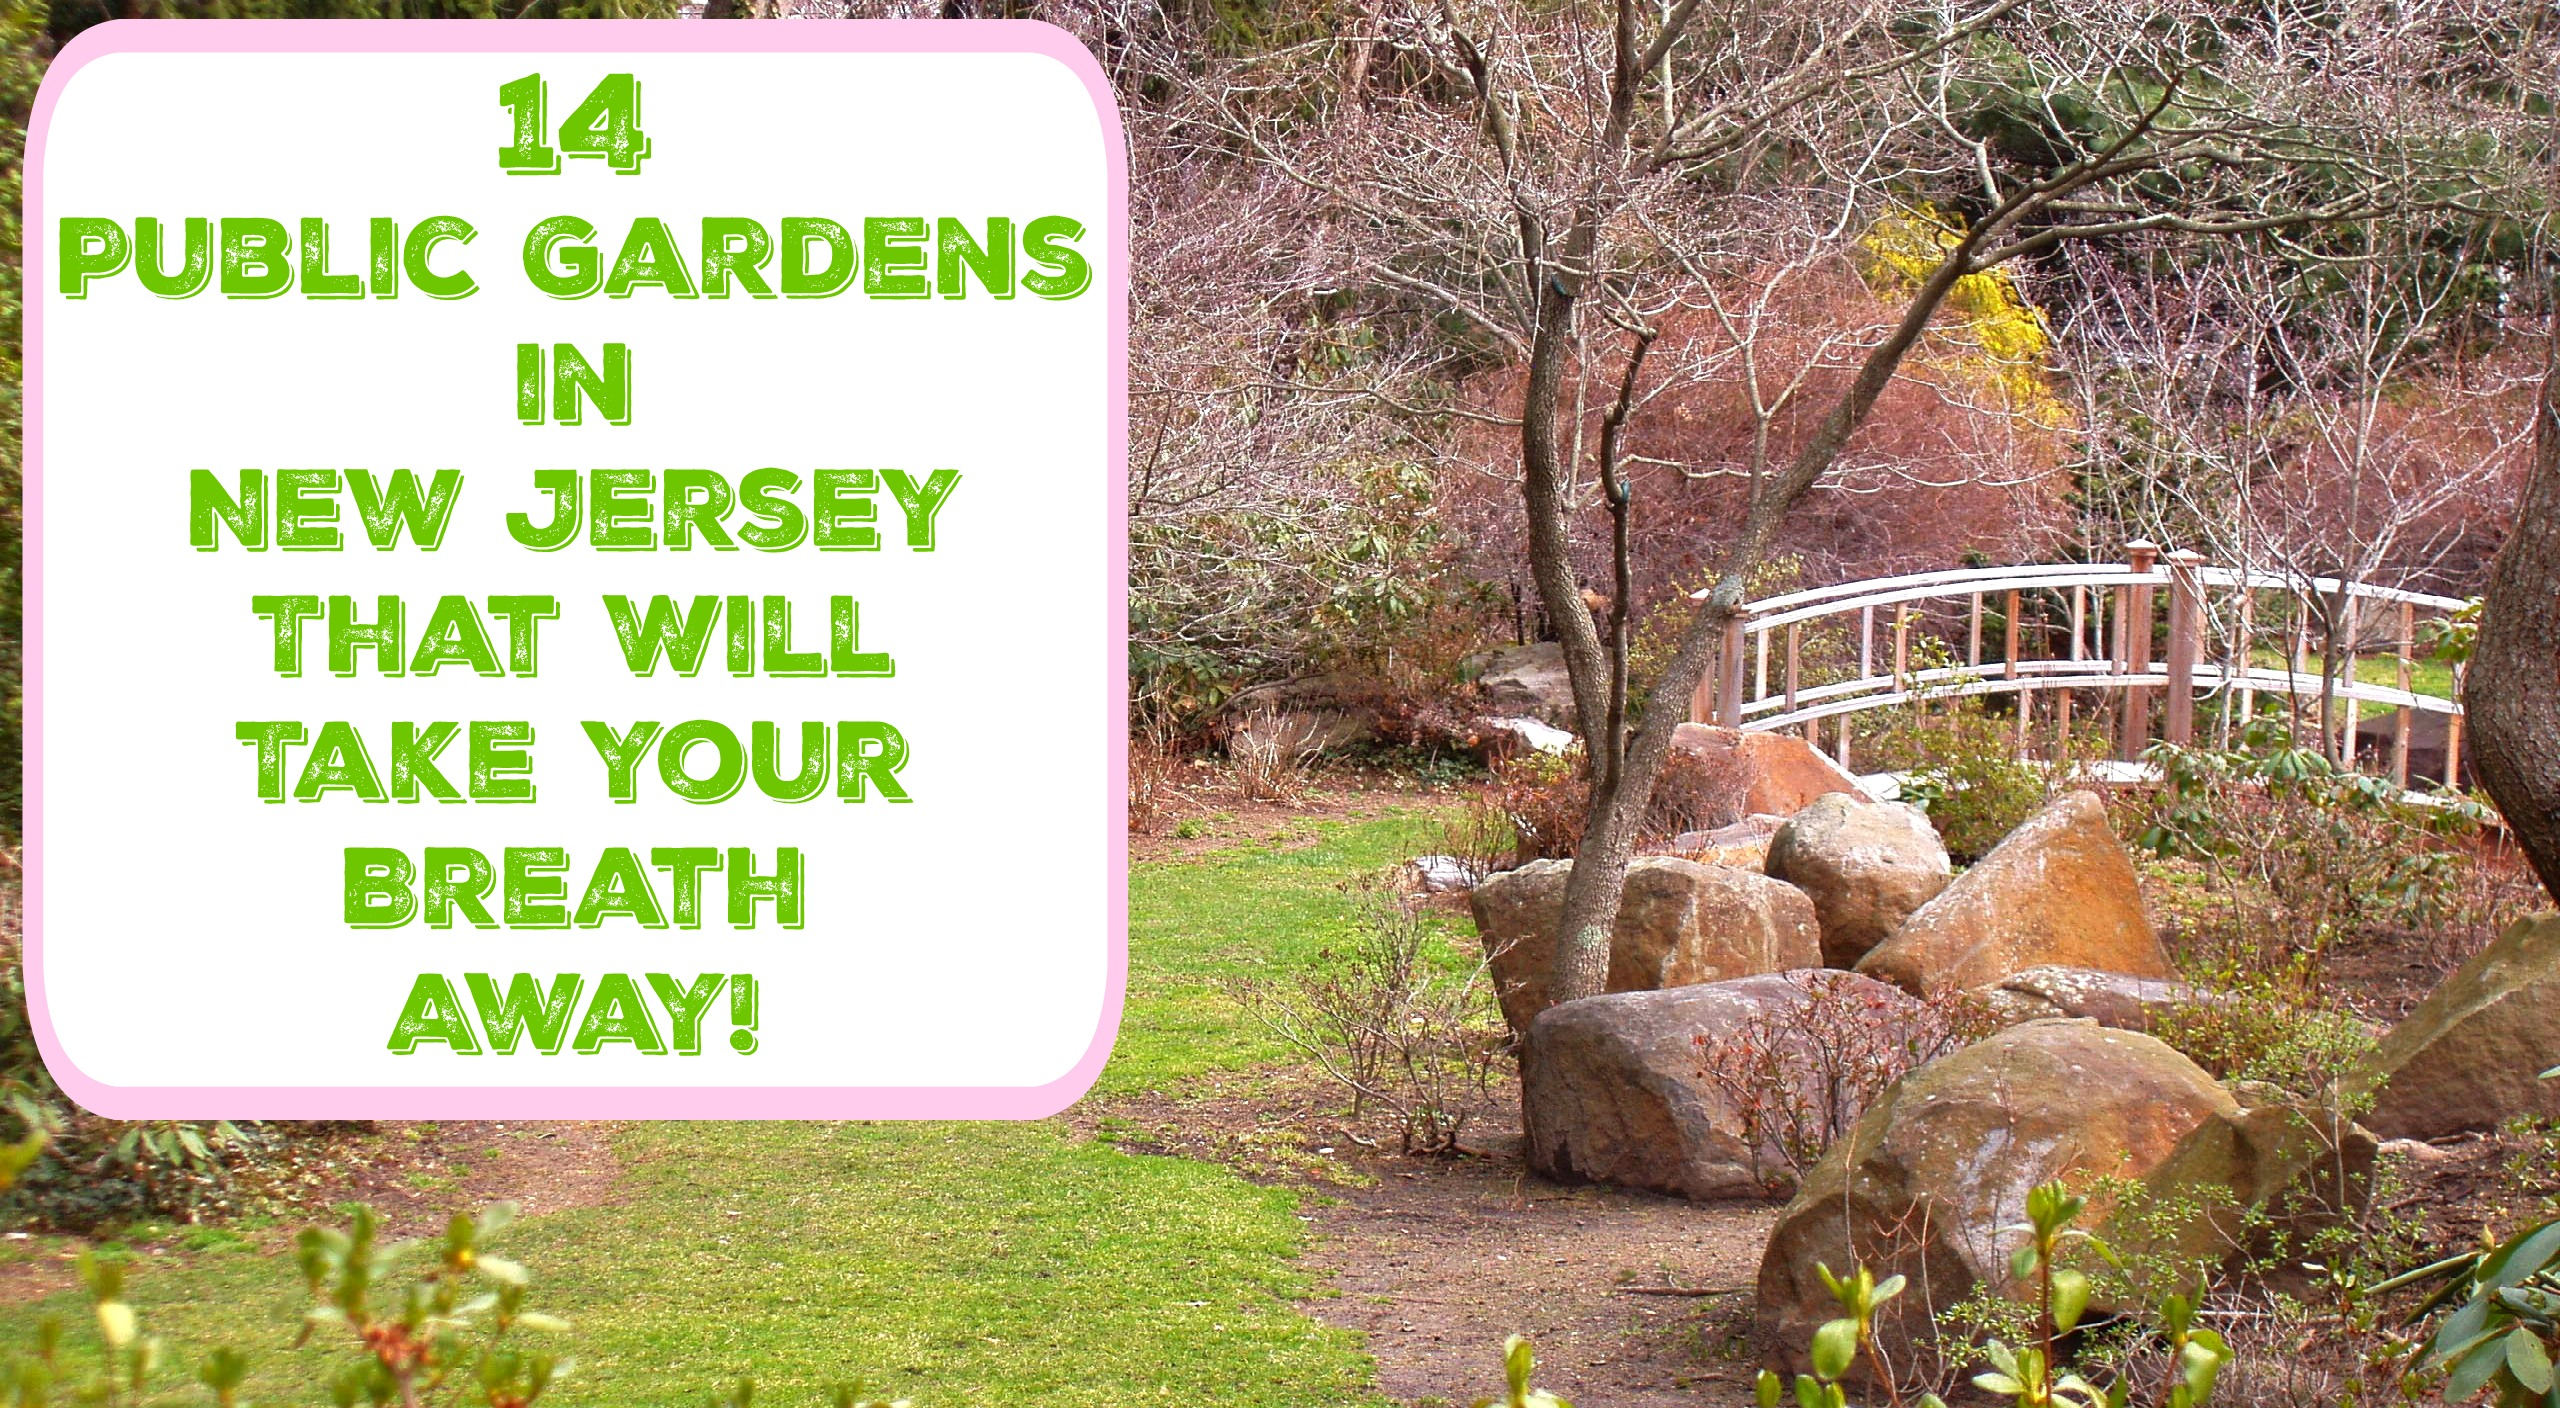 14 Public Gardens In New Jersey That Will Take Your Breath Away! | Nj Public